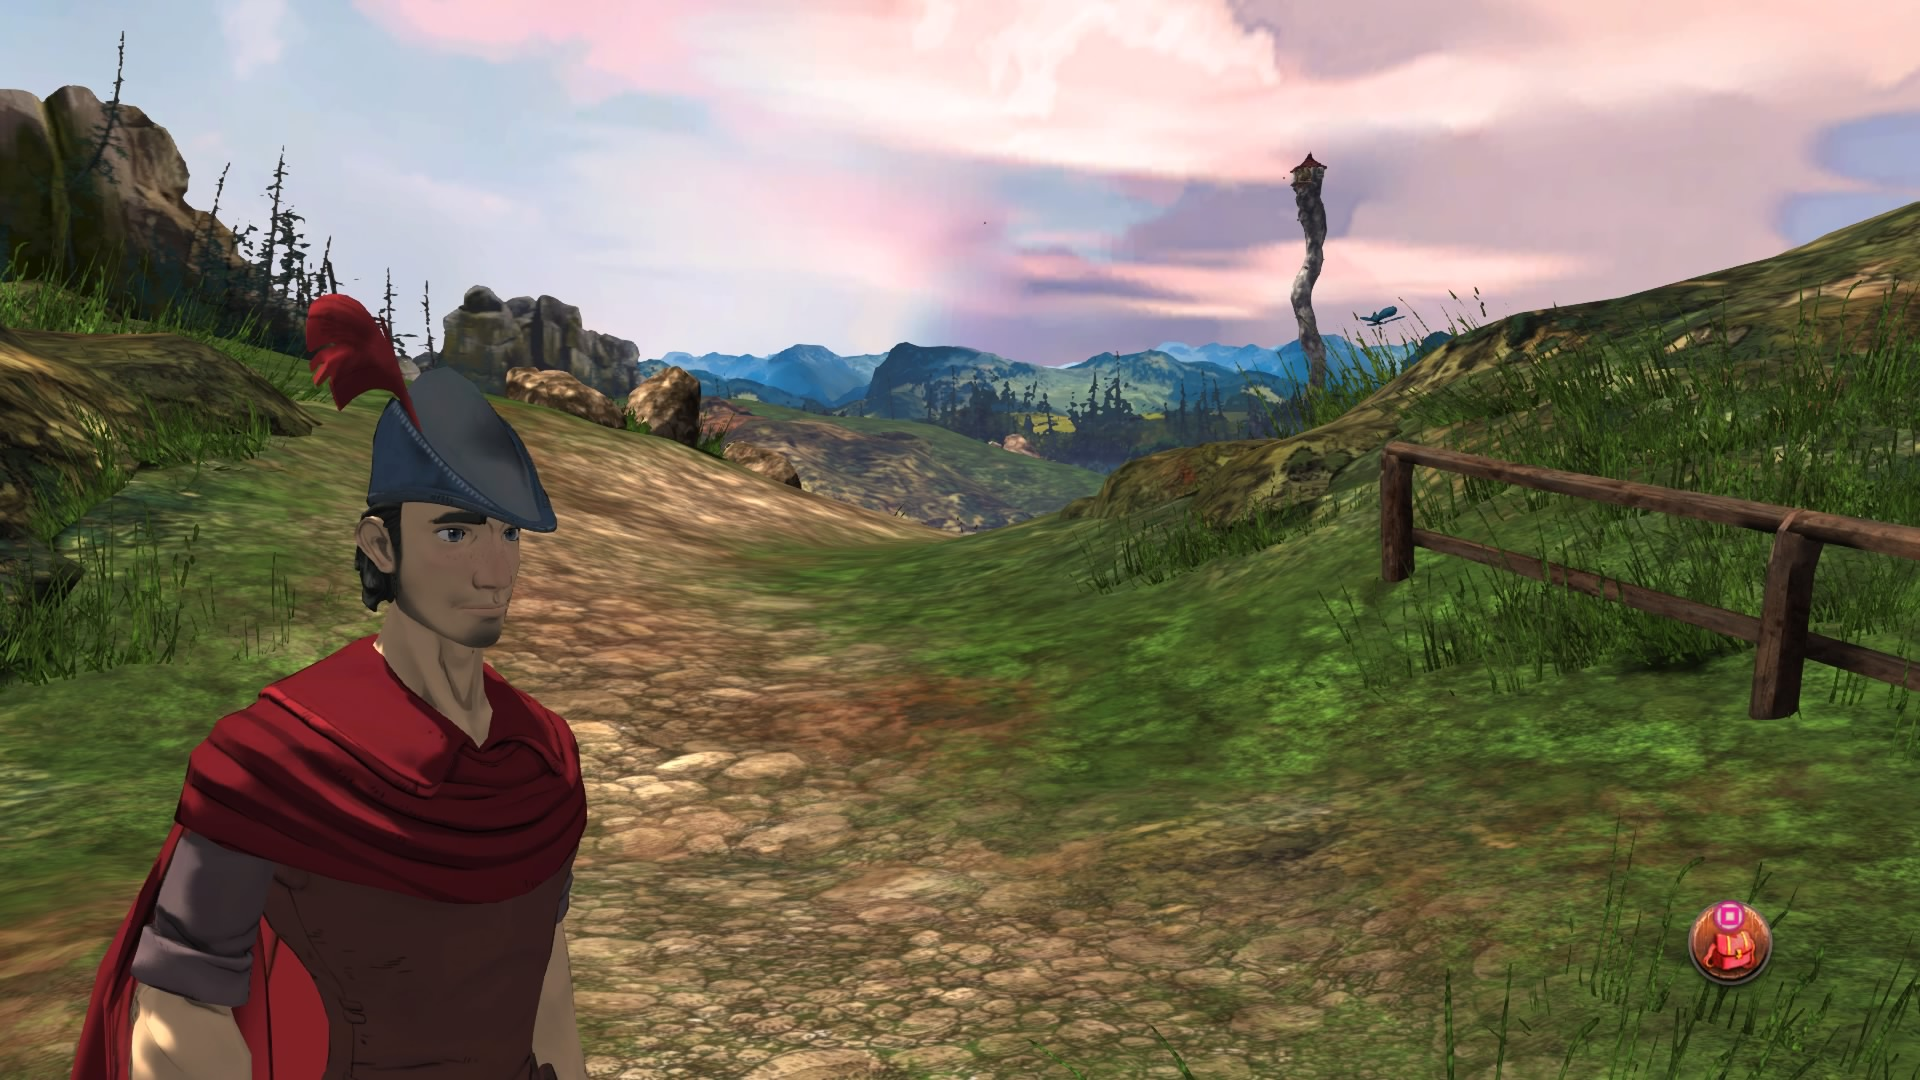 King's Quest Chapter 3: Once Upon a Climb Review